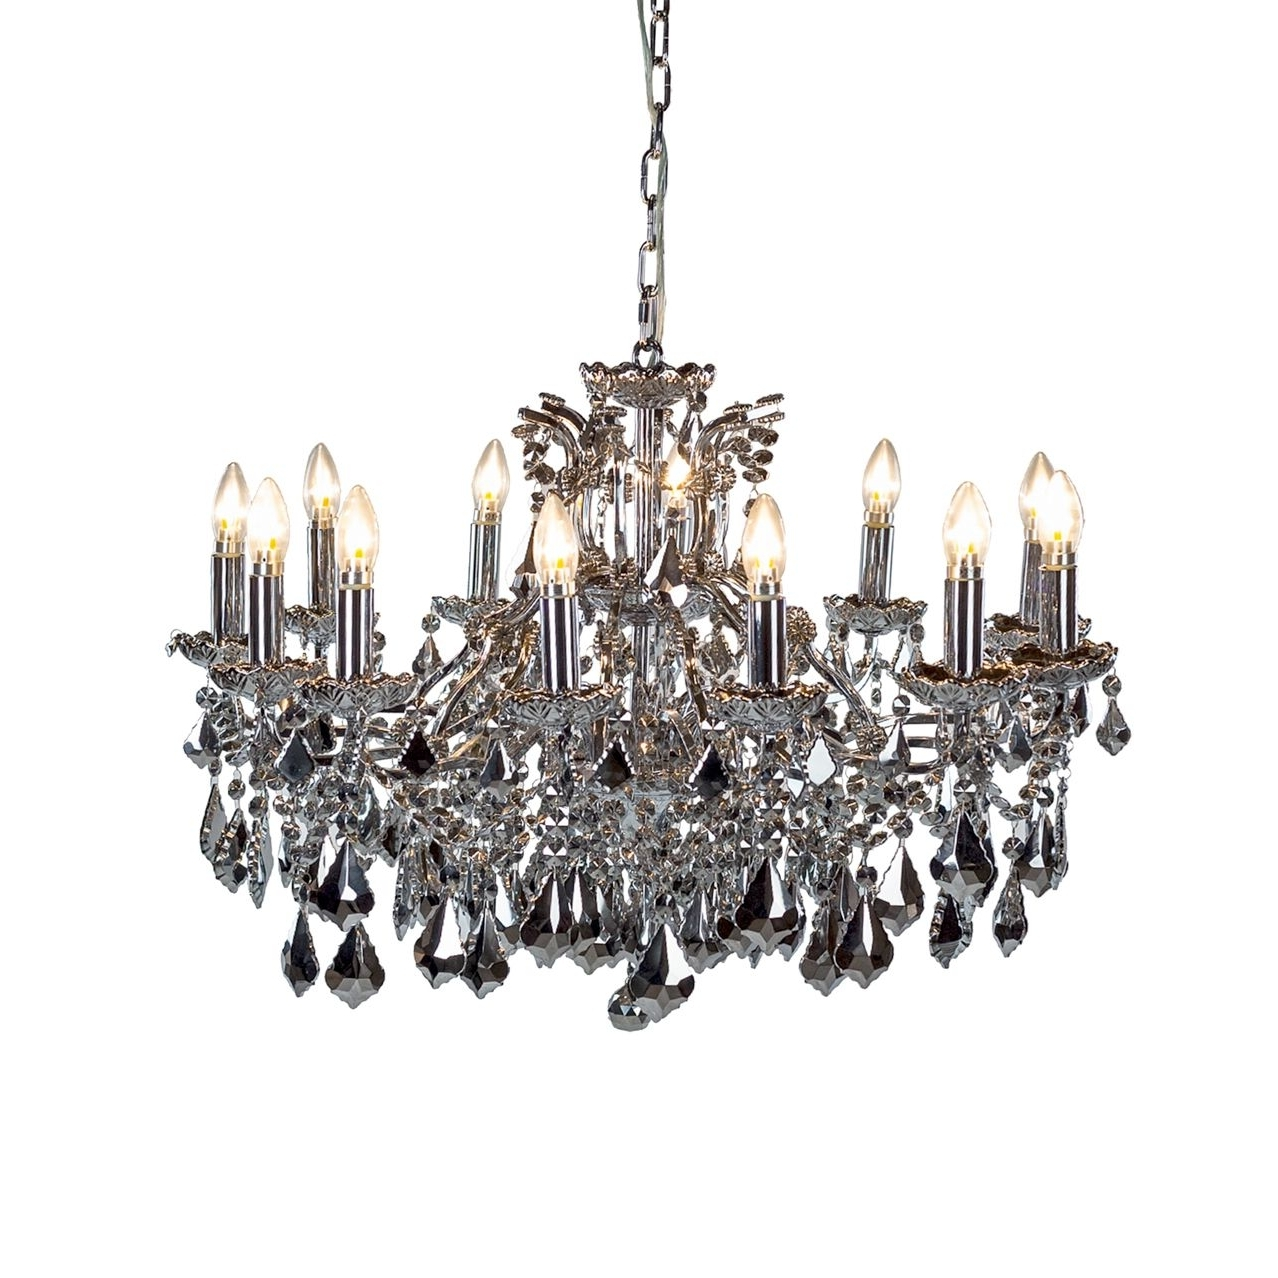 Arabella Mirrored 12 Arm Chandelier Regarding Latest Mirrored Chandelier (Gallery 5 of 20)